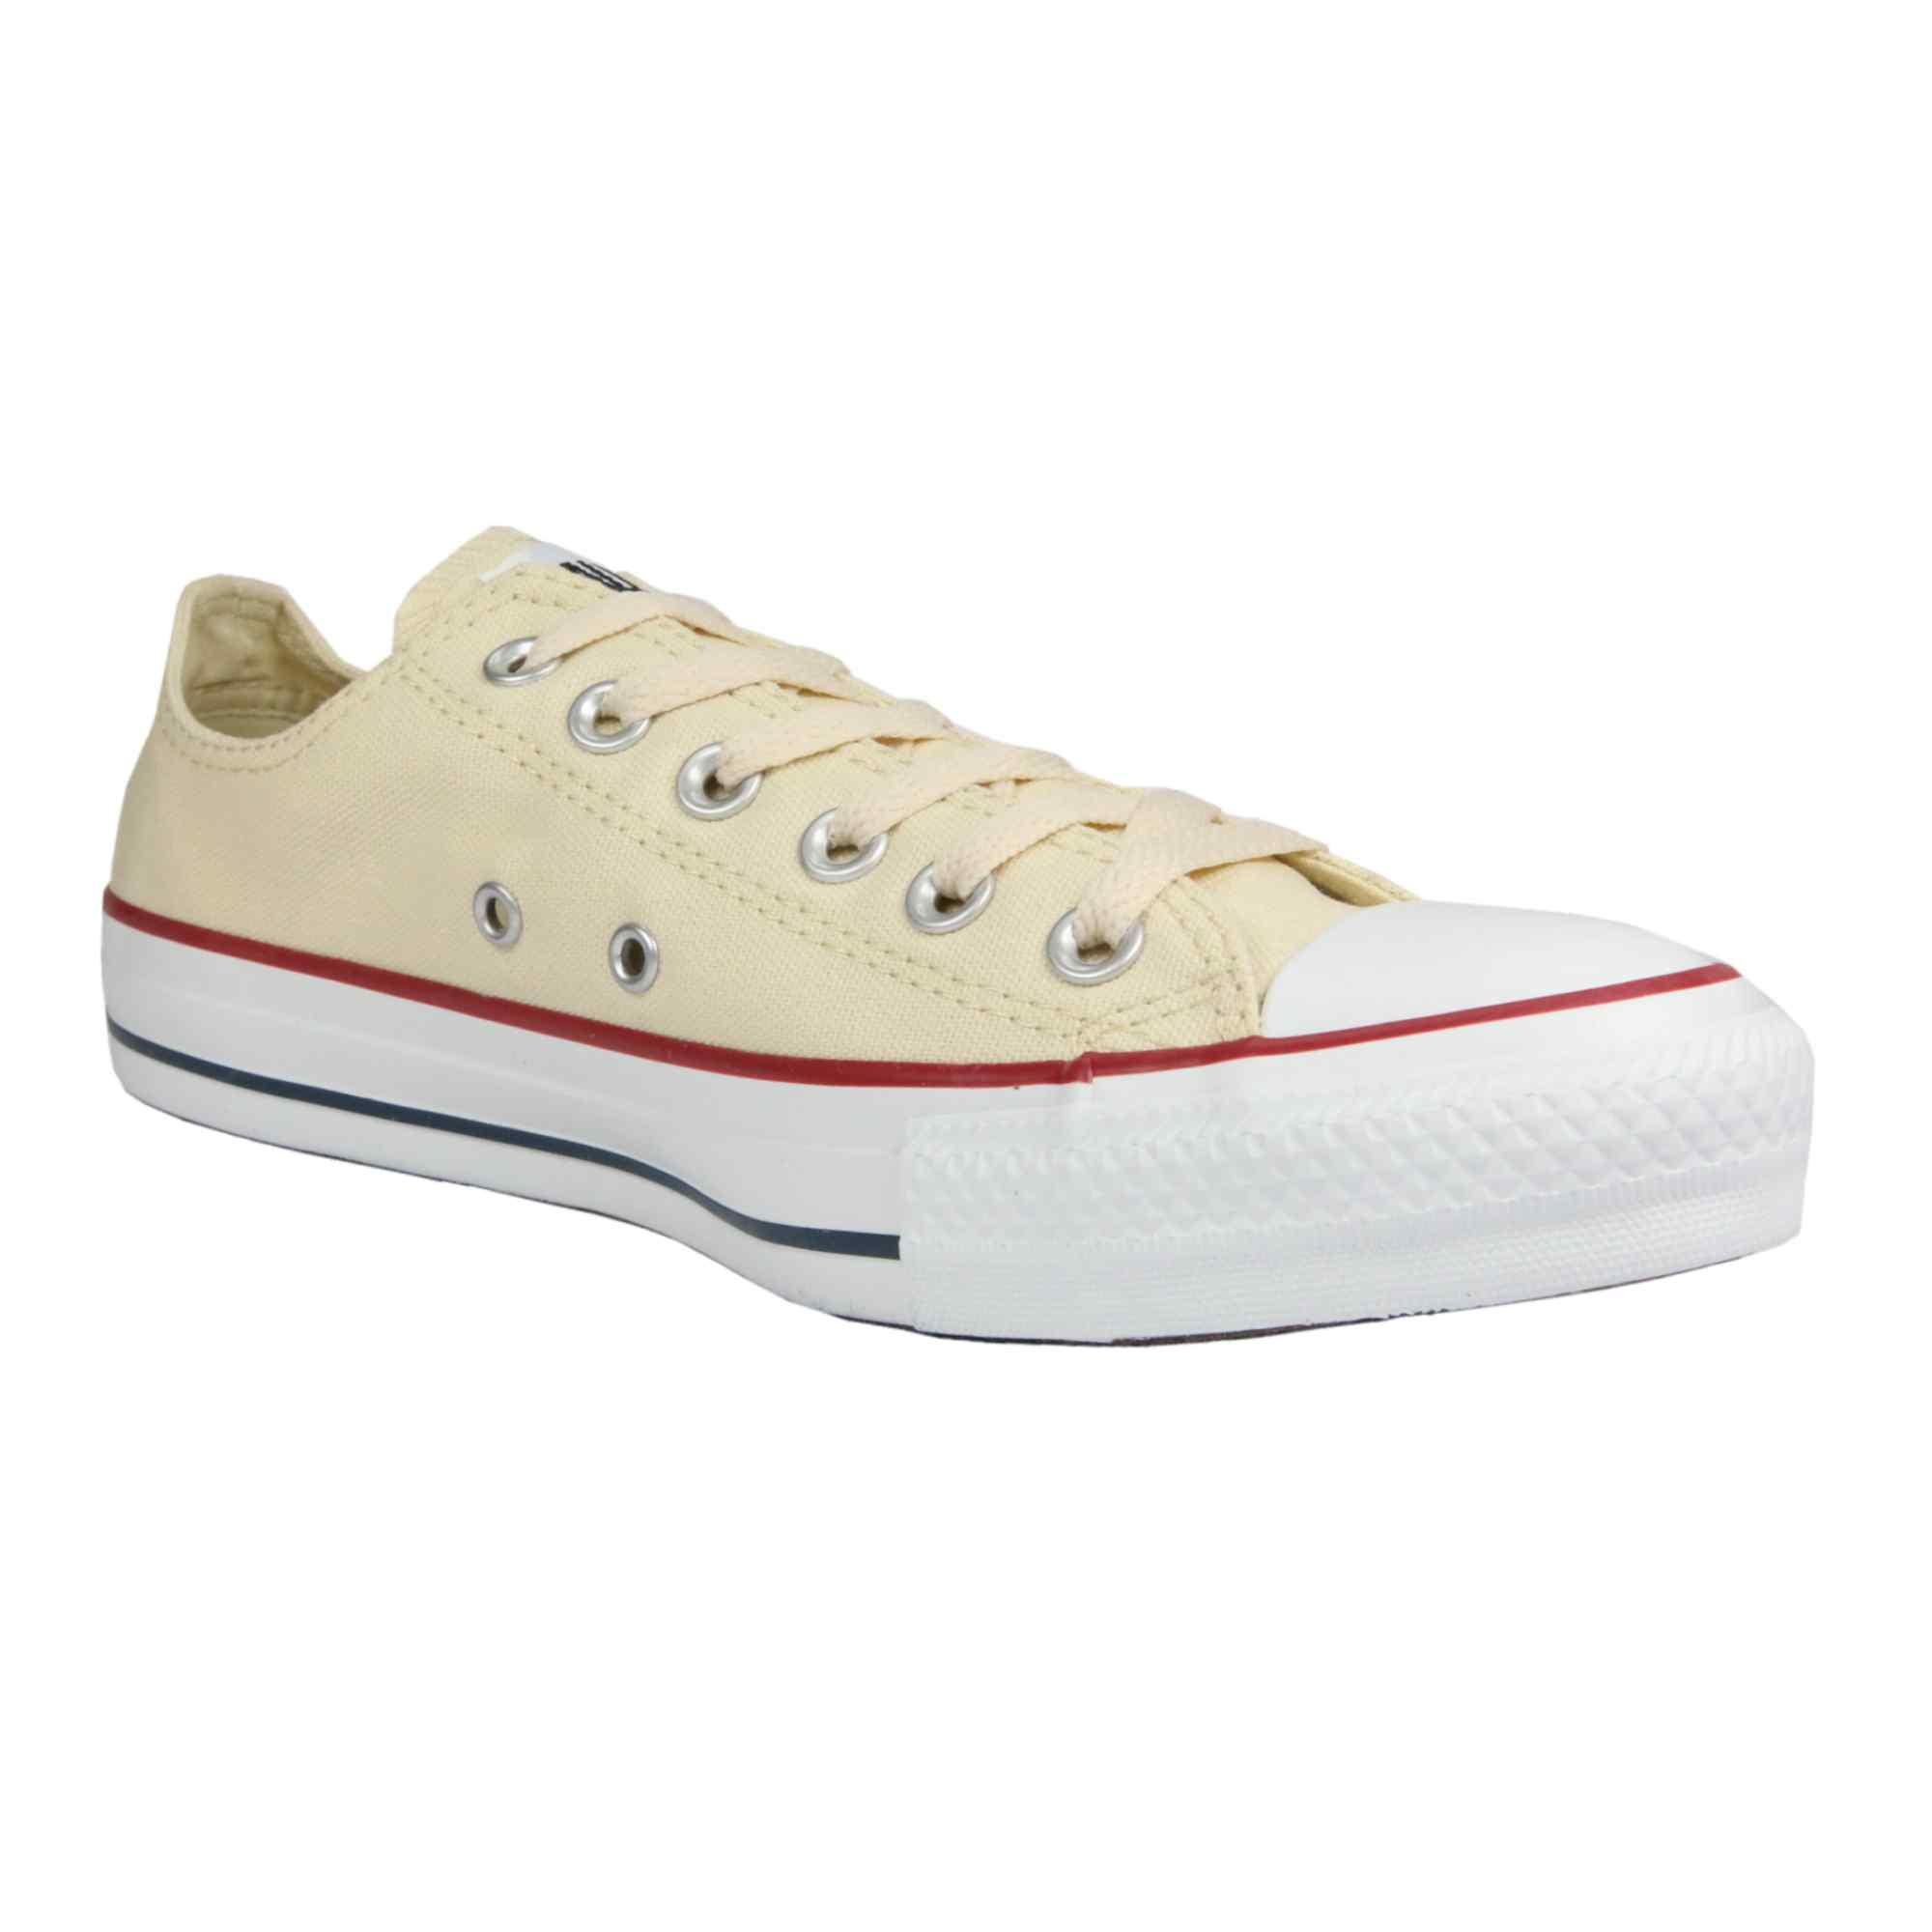 Converse-Chuck-All-star-ox-canvas-Chaussures-sneaker-diverses-couleurs